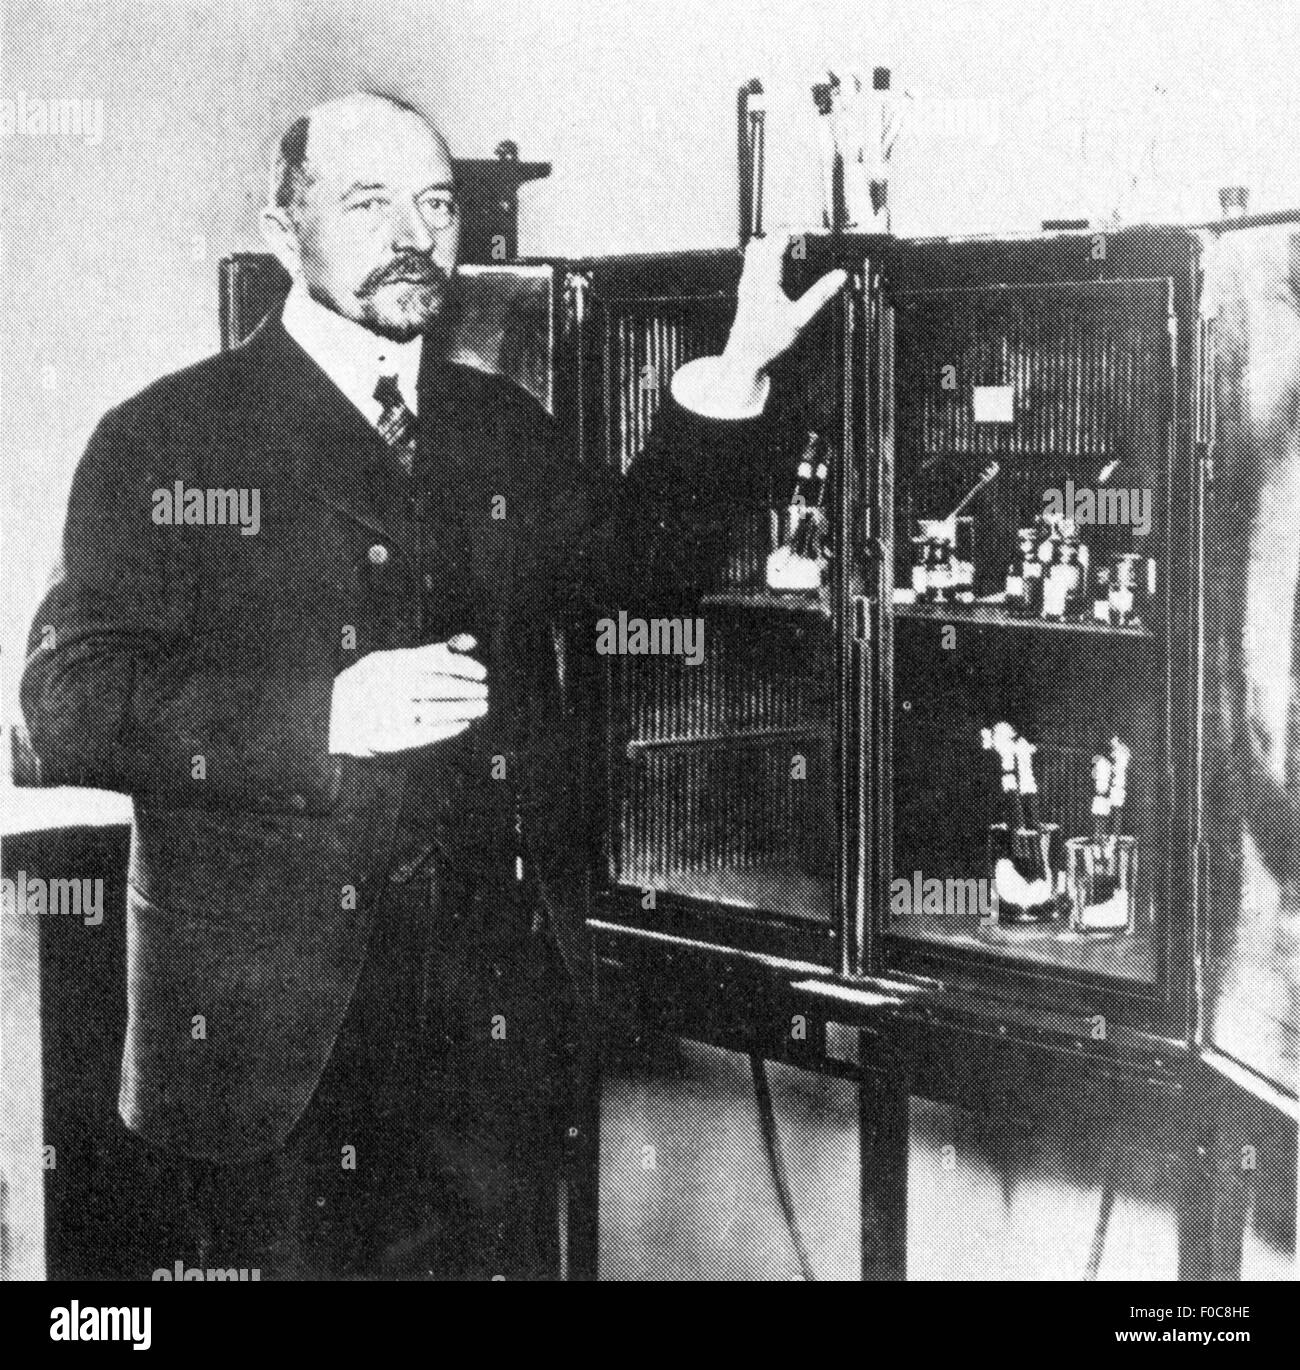 Behring, Emil von, 15.3.1854 - 31.3.1917, German scientist (bacteriologist), half length, in front of incubator - Stock Image